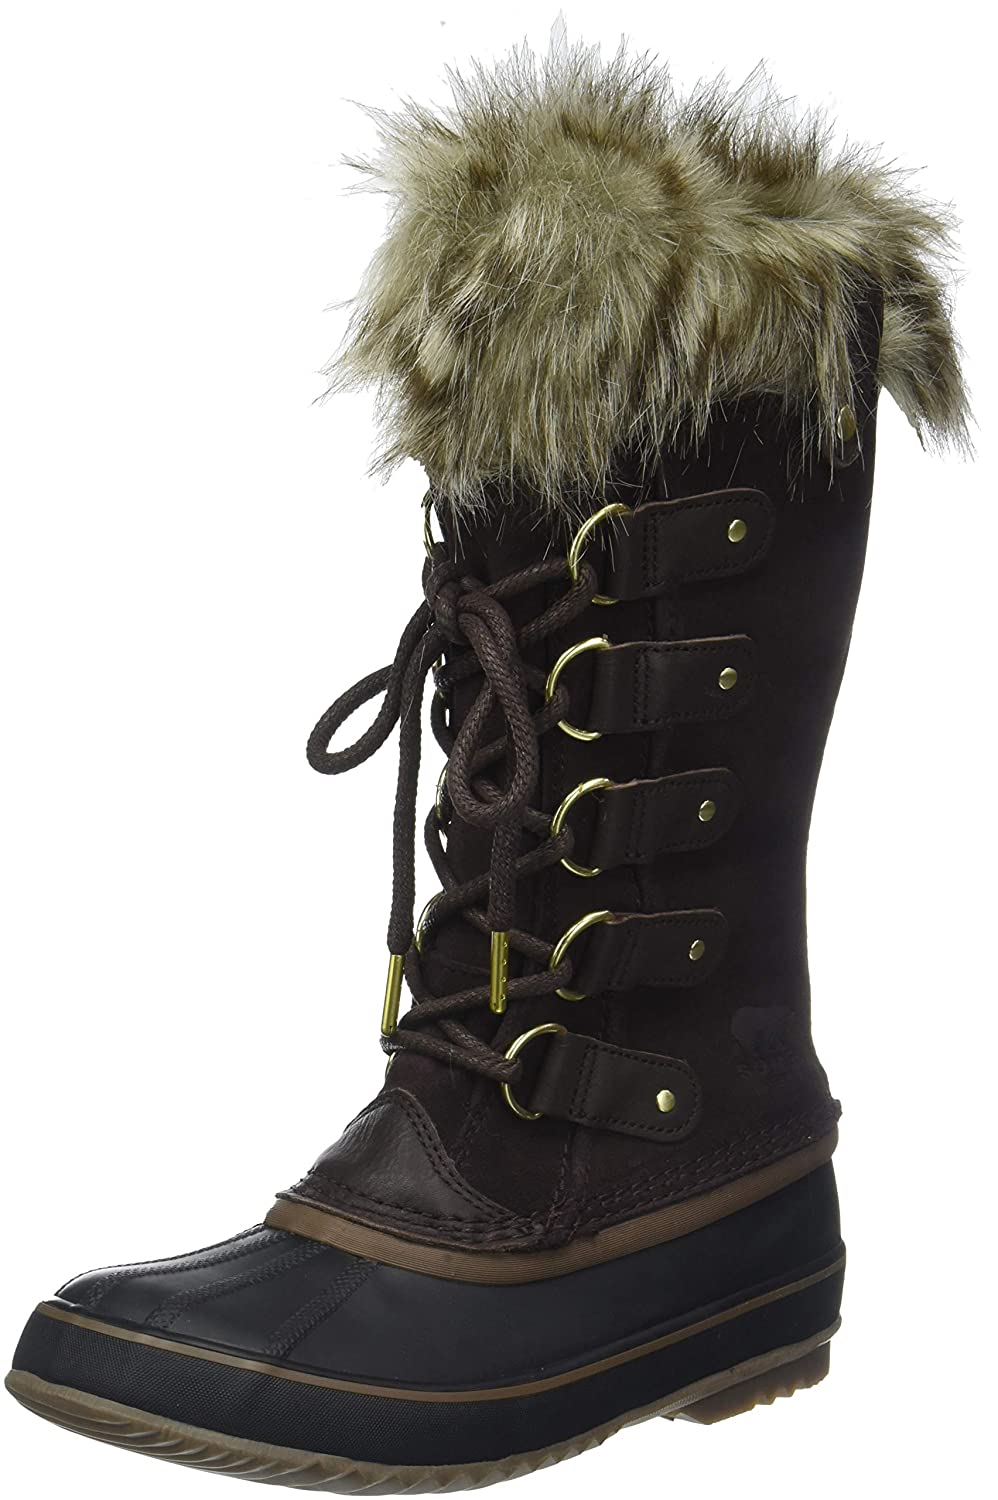 d3462995fad Sorel Women's Joan Of Arctic Boot